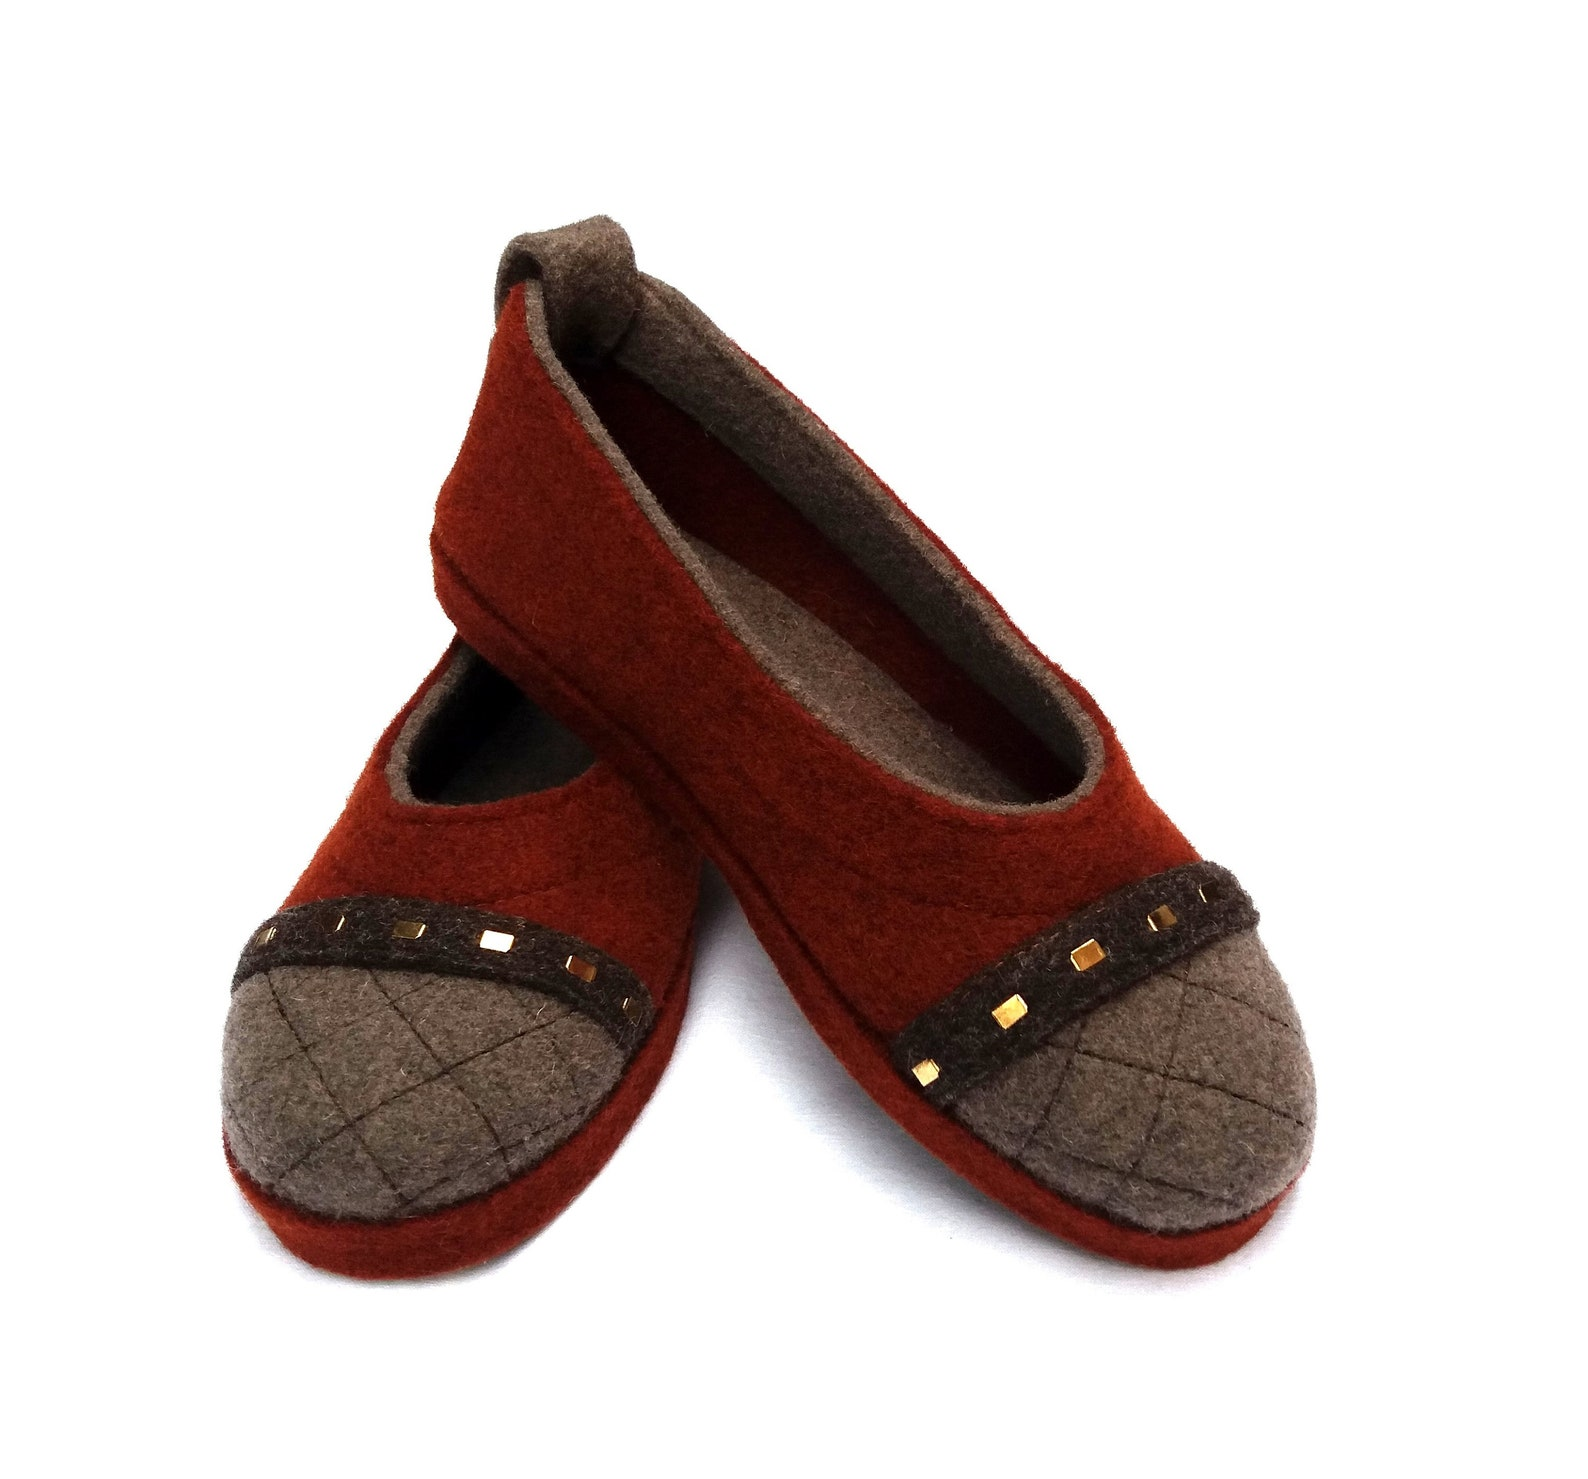 wool felt warm ballet flat slippers affori